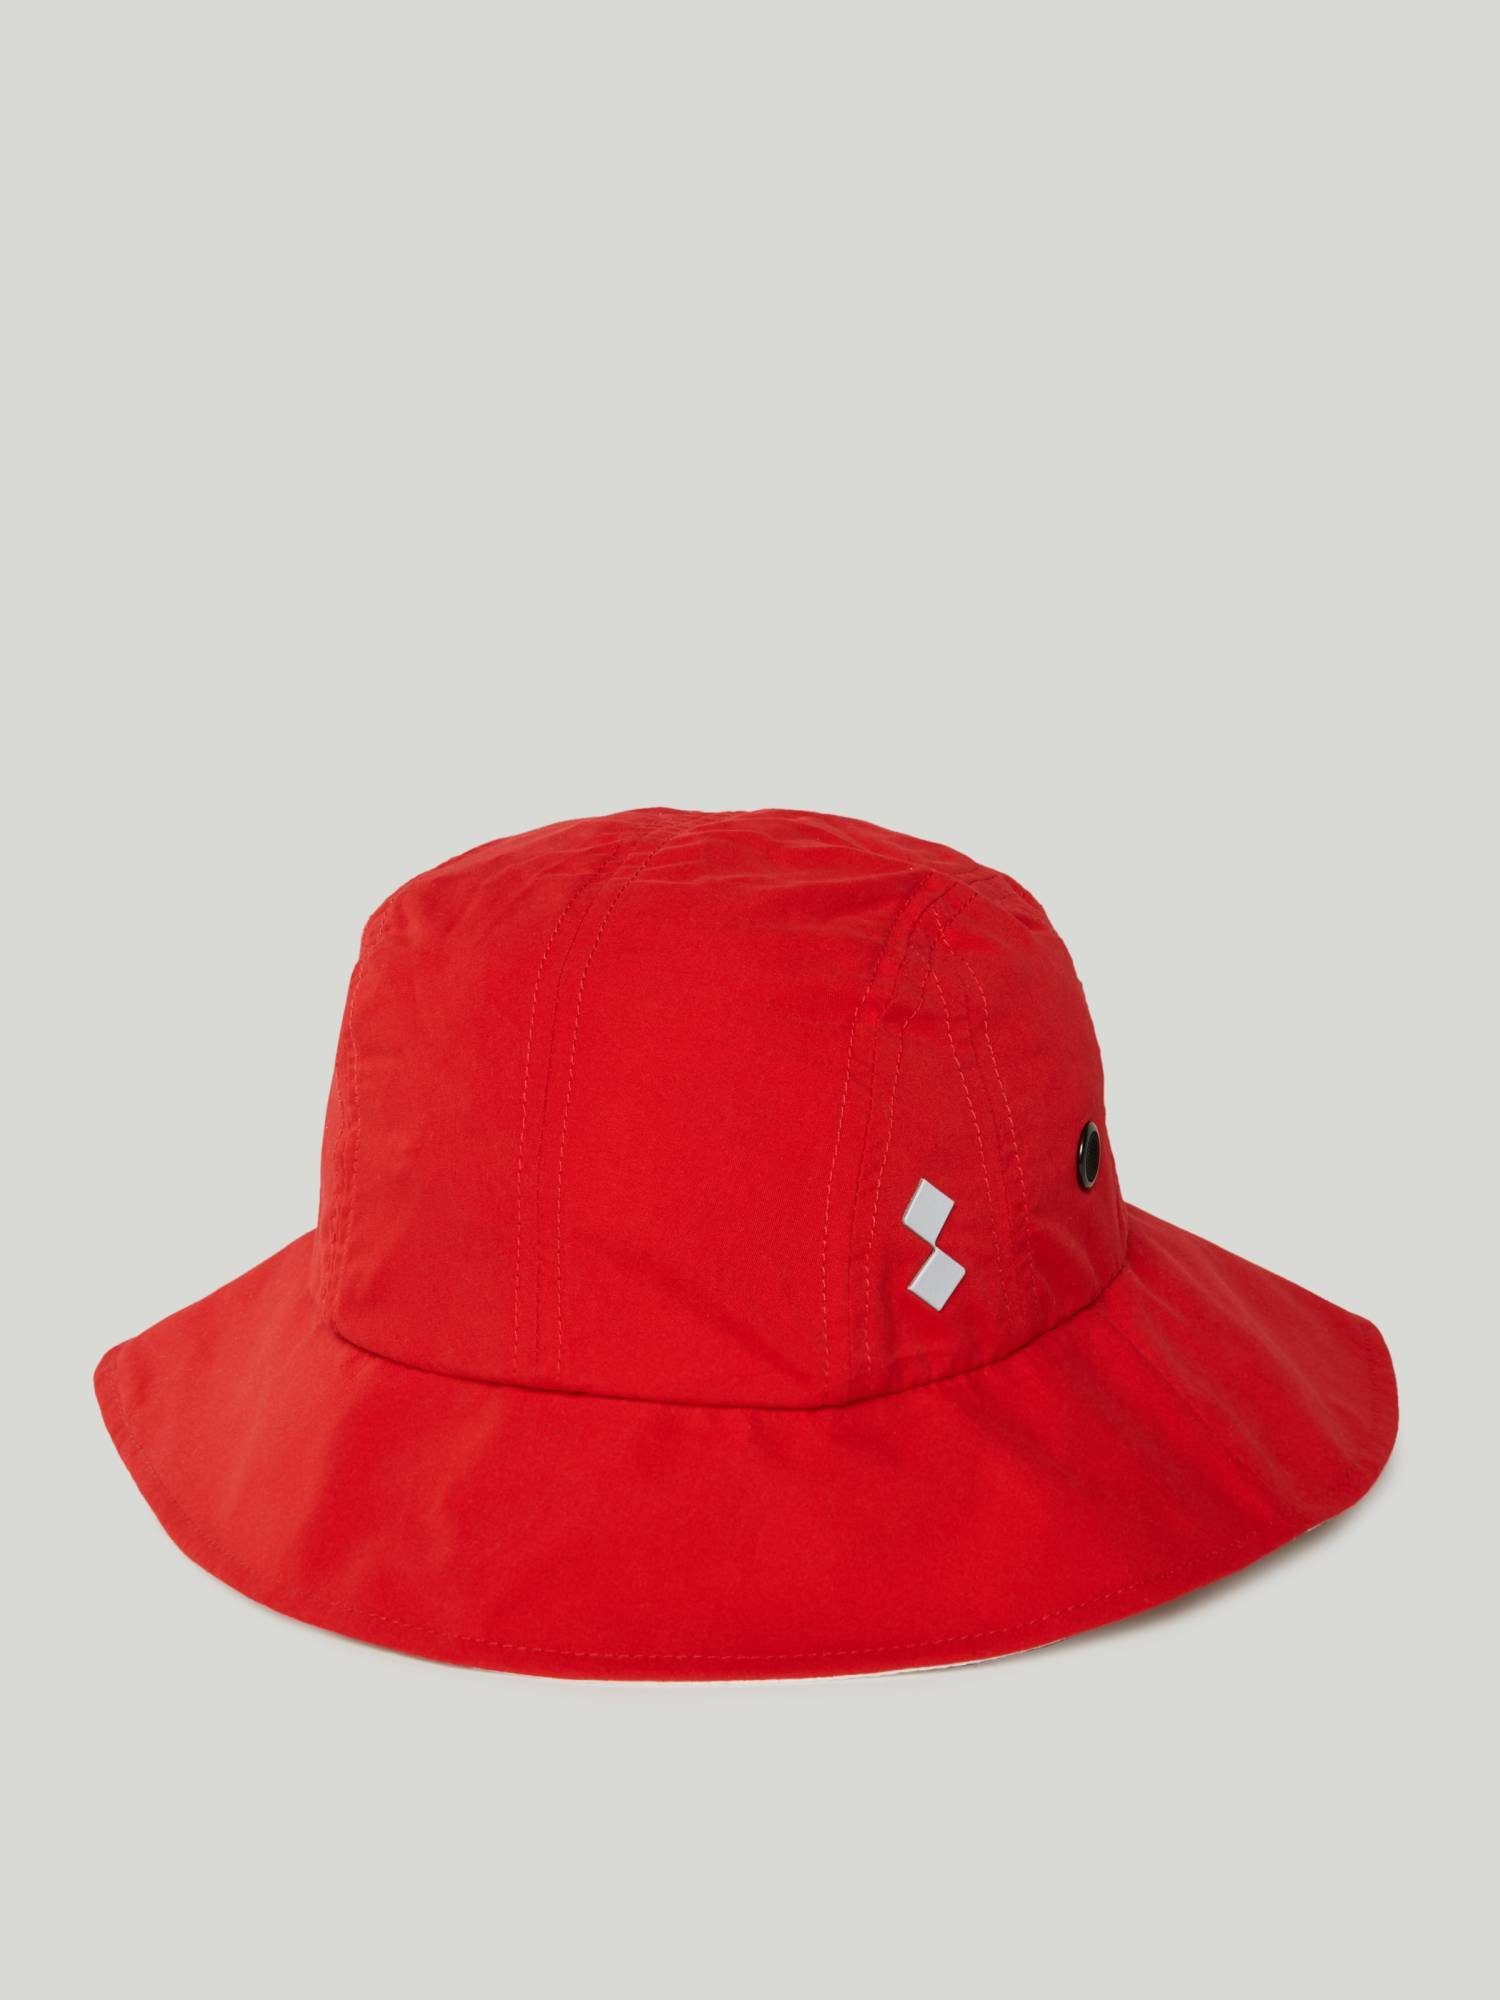 Hat A207 - Rosso Slam